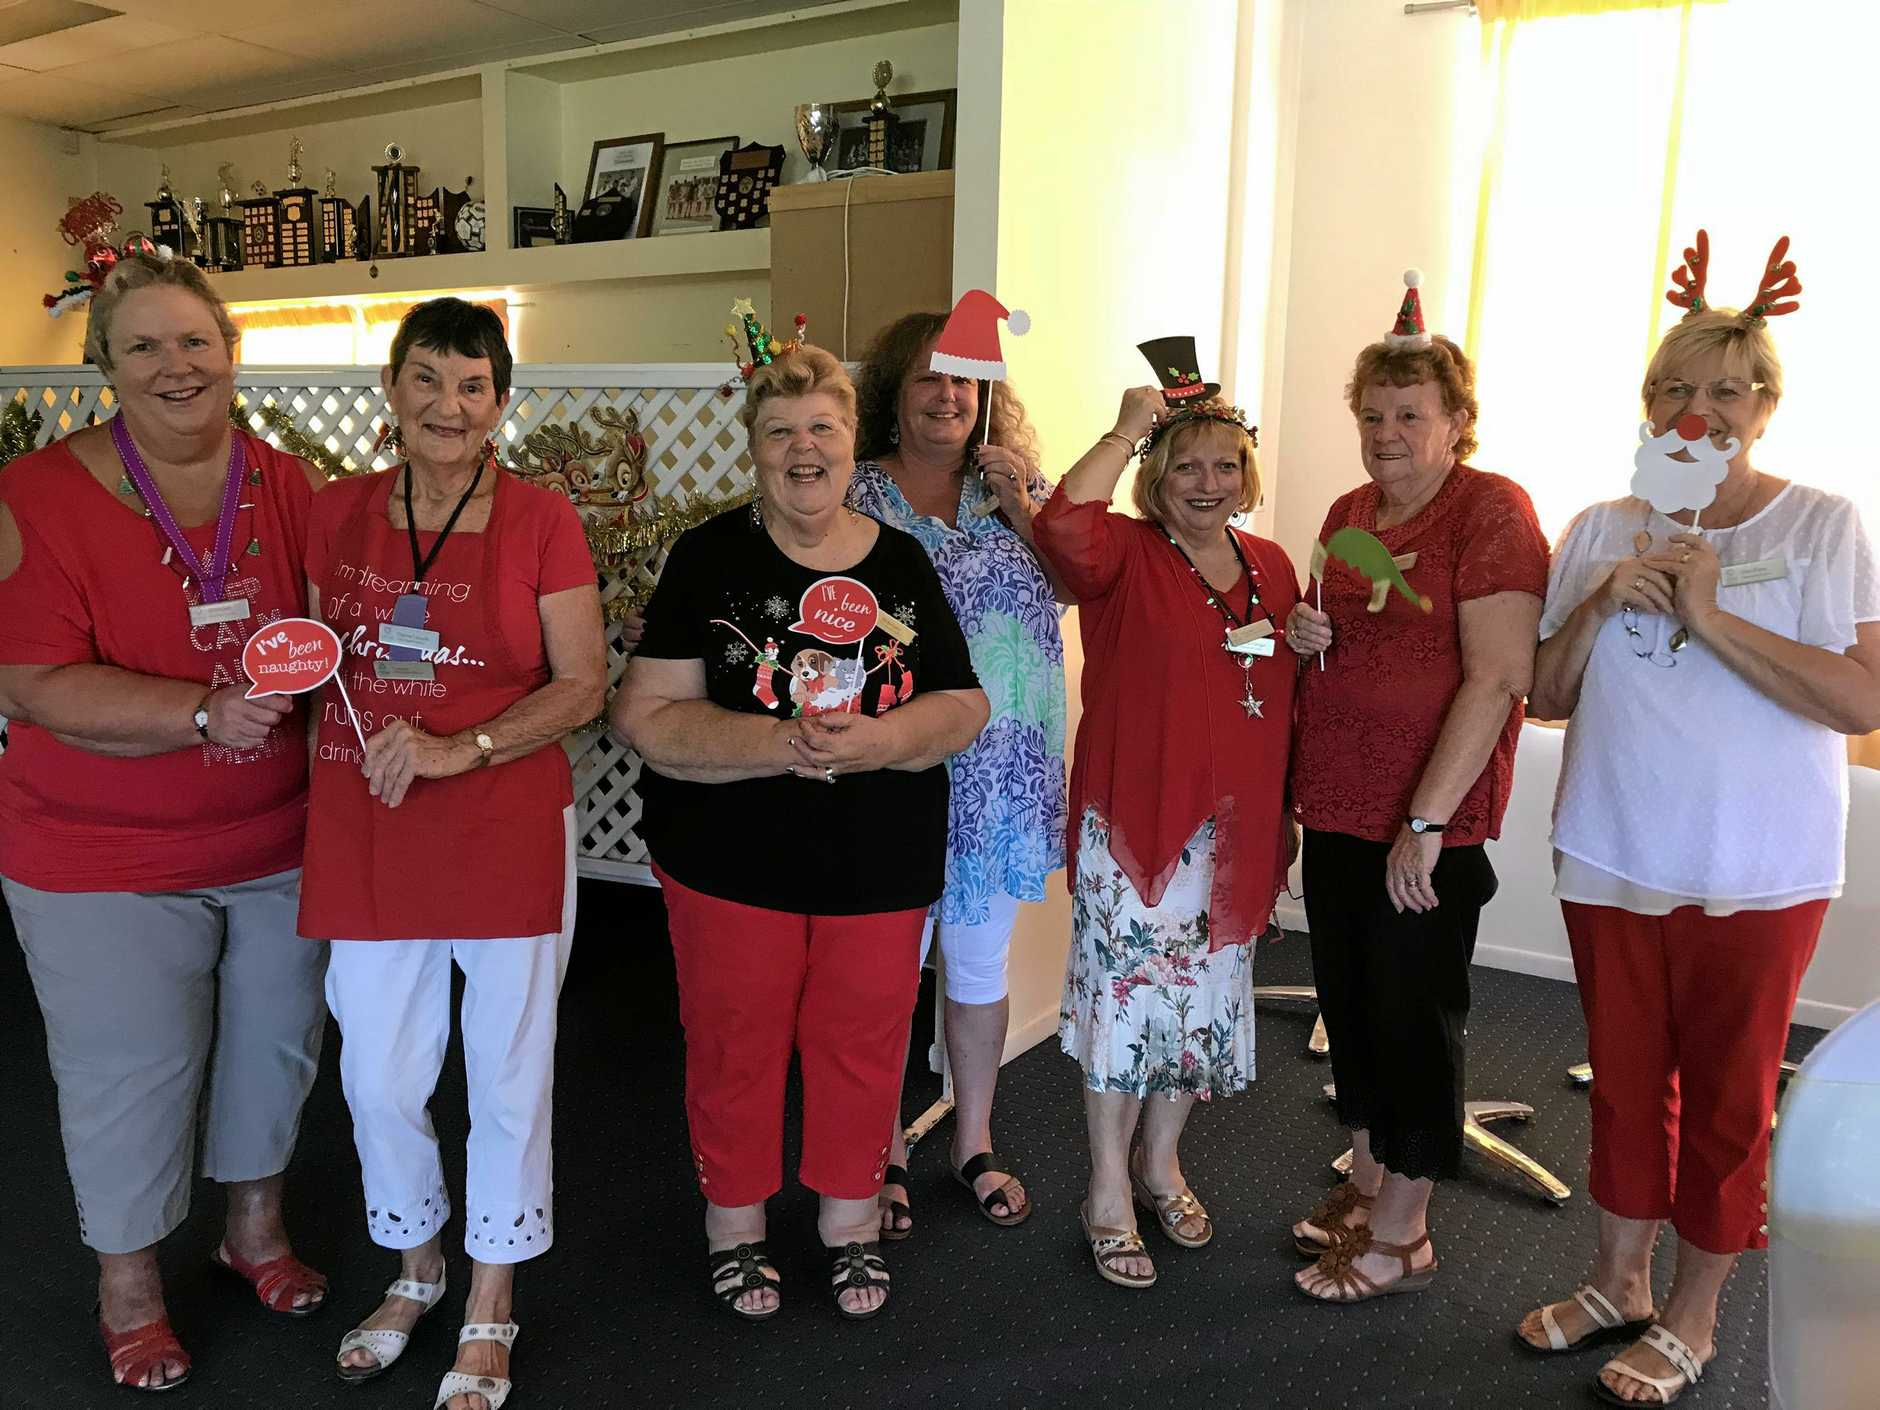 Glasshouse Country VIEW club ladies having fun at their recent Christmas party.